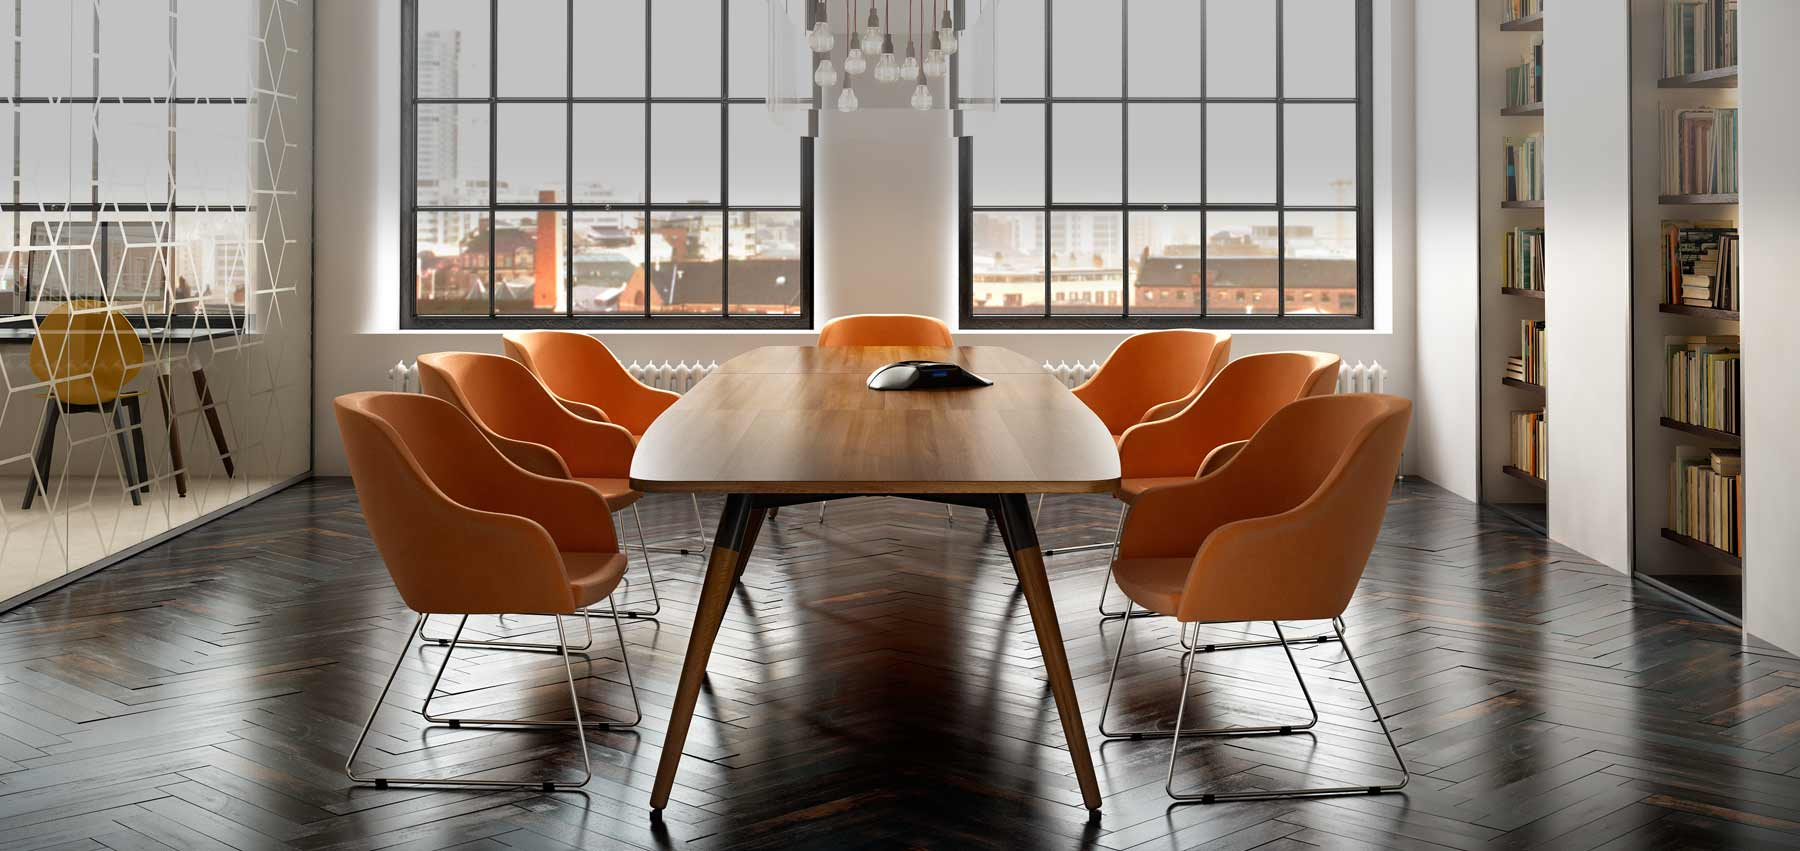 COMPLETE INTERIOR SOLUTIONS SO MUCH MORE THAN JUST OFFICE FURNITURE